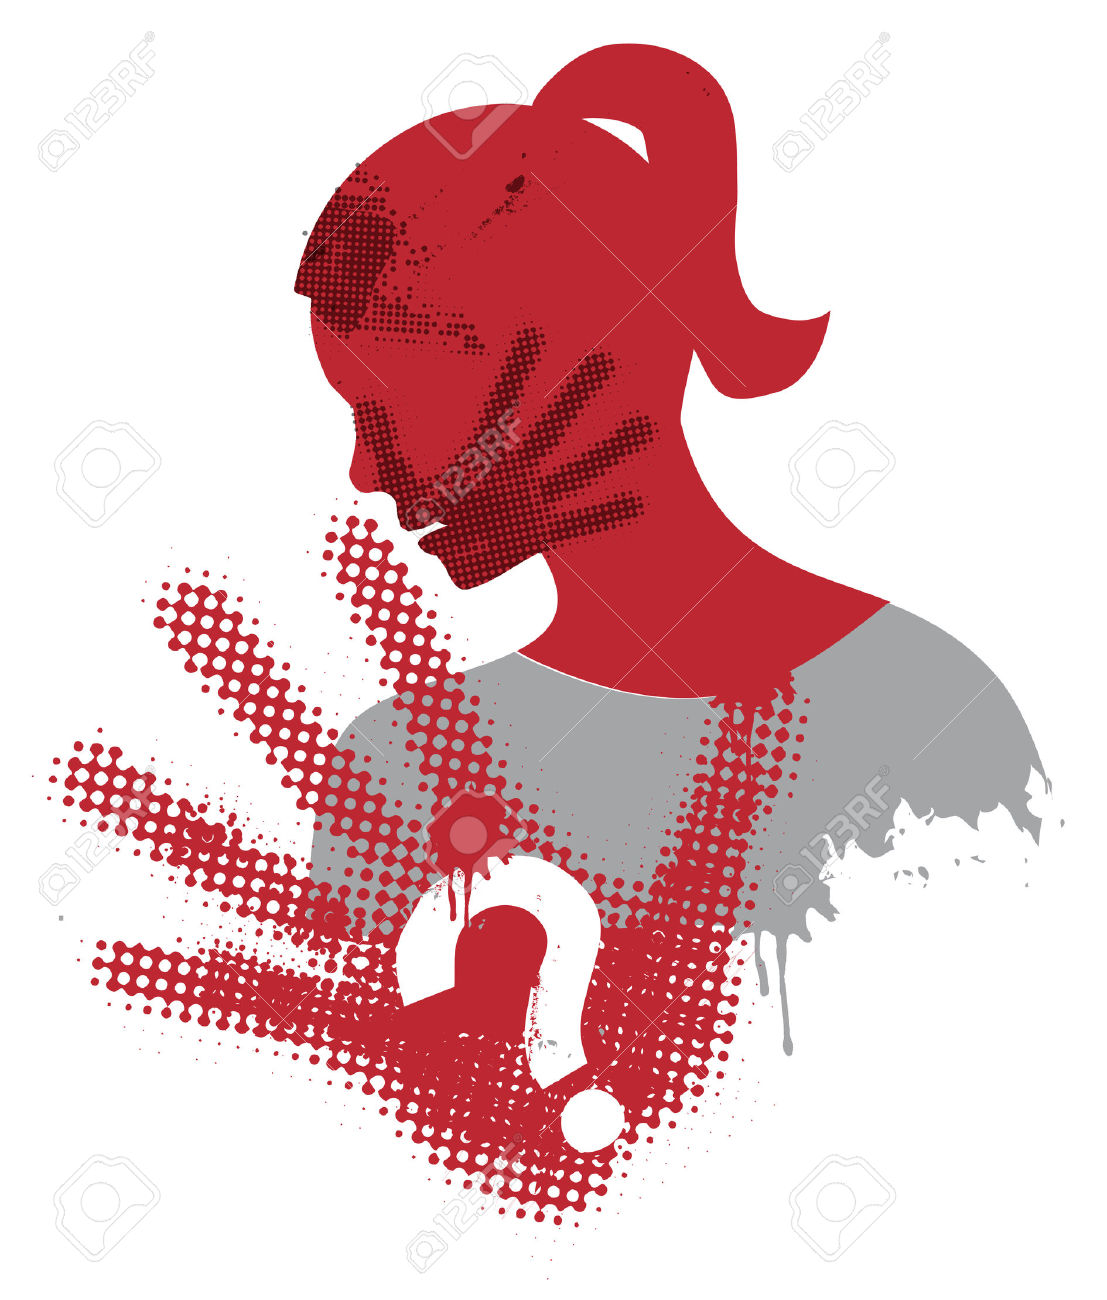 Violence Against Woman. Young Woman Grunge Silhouette Covering.